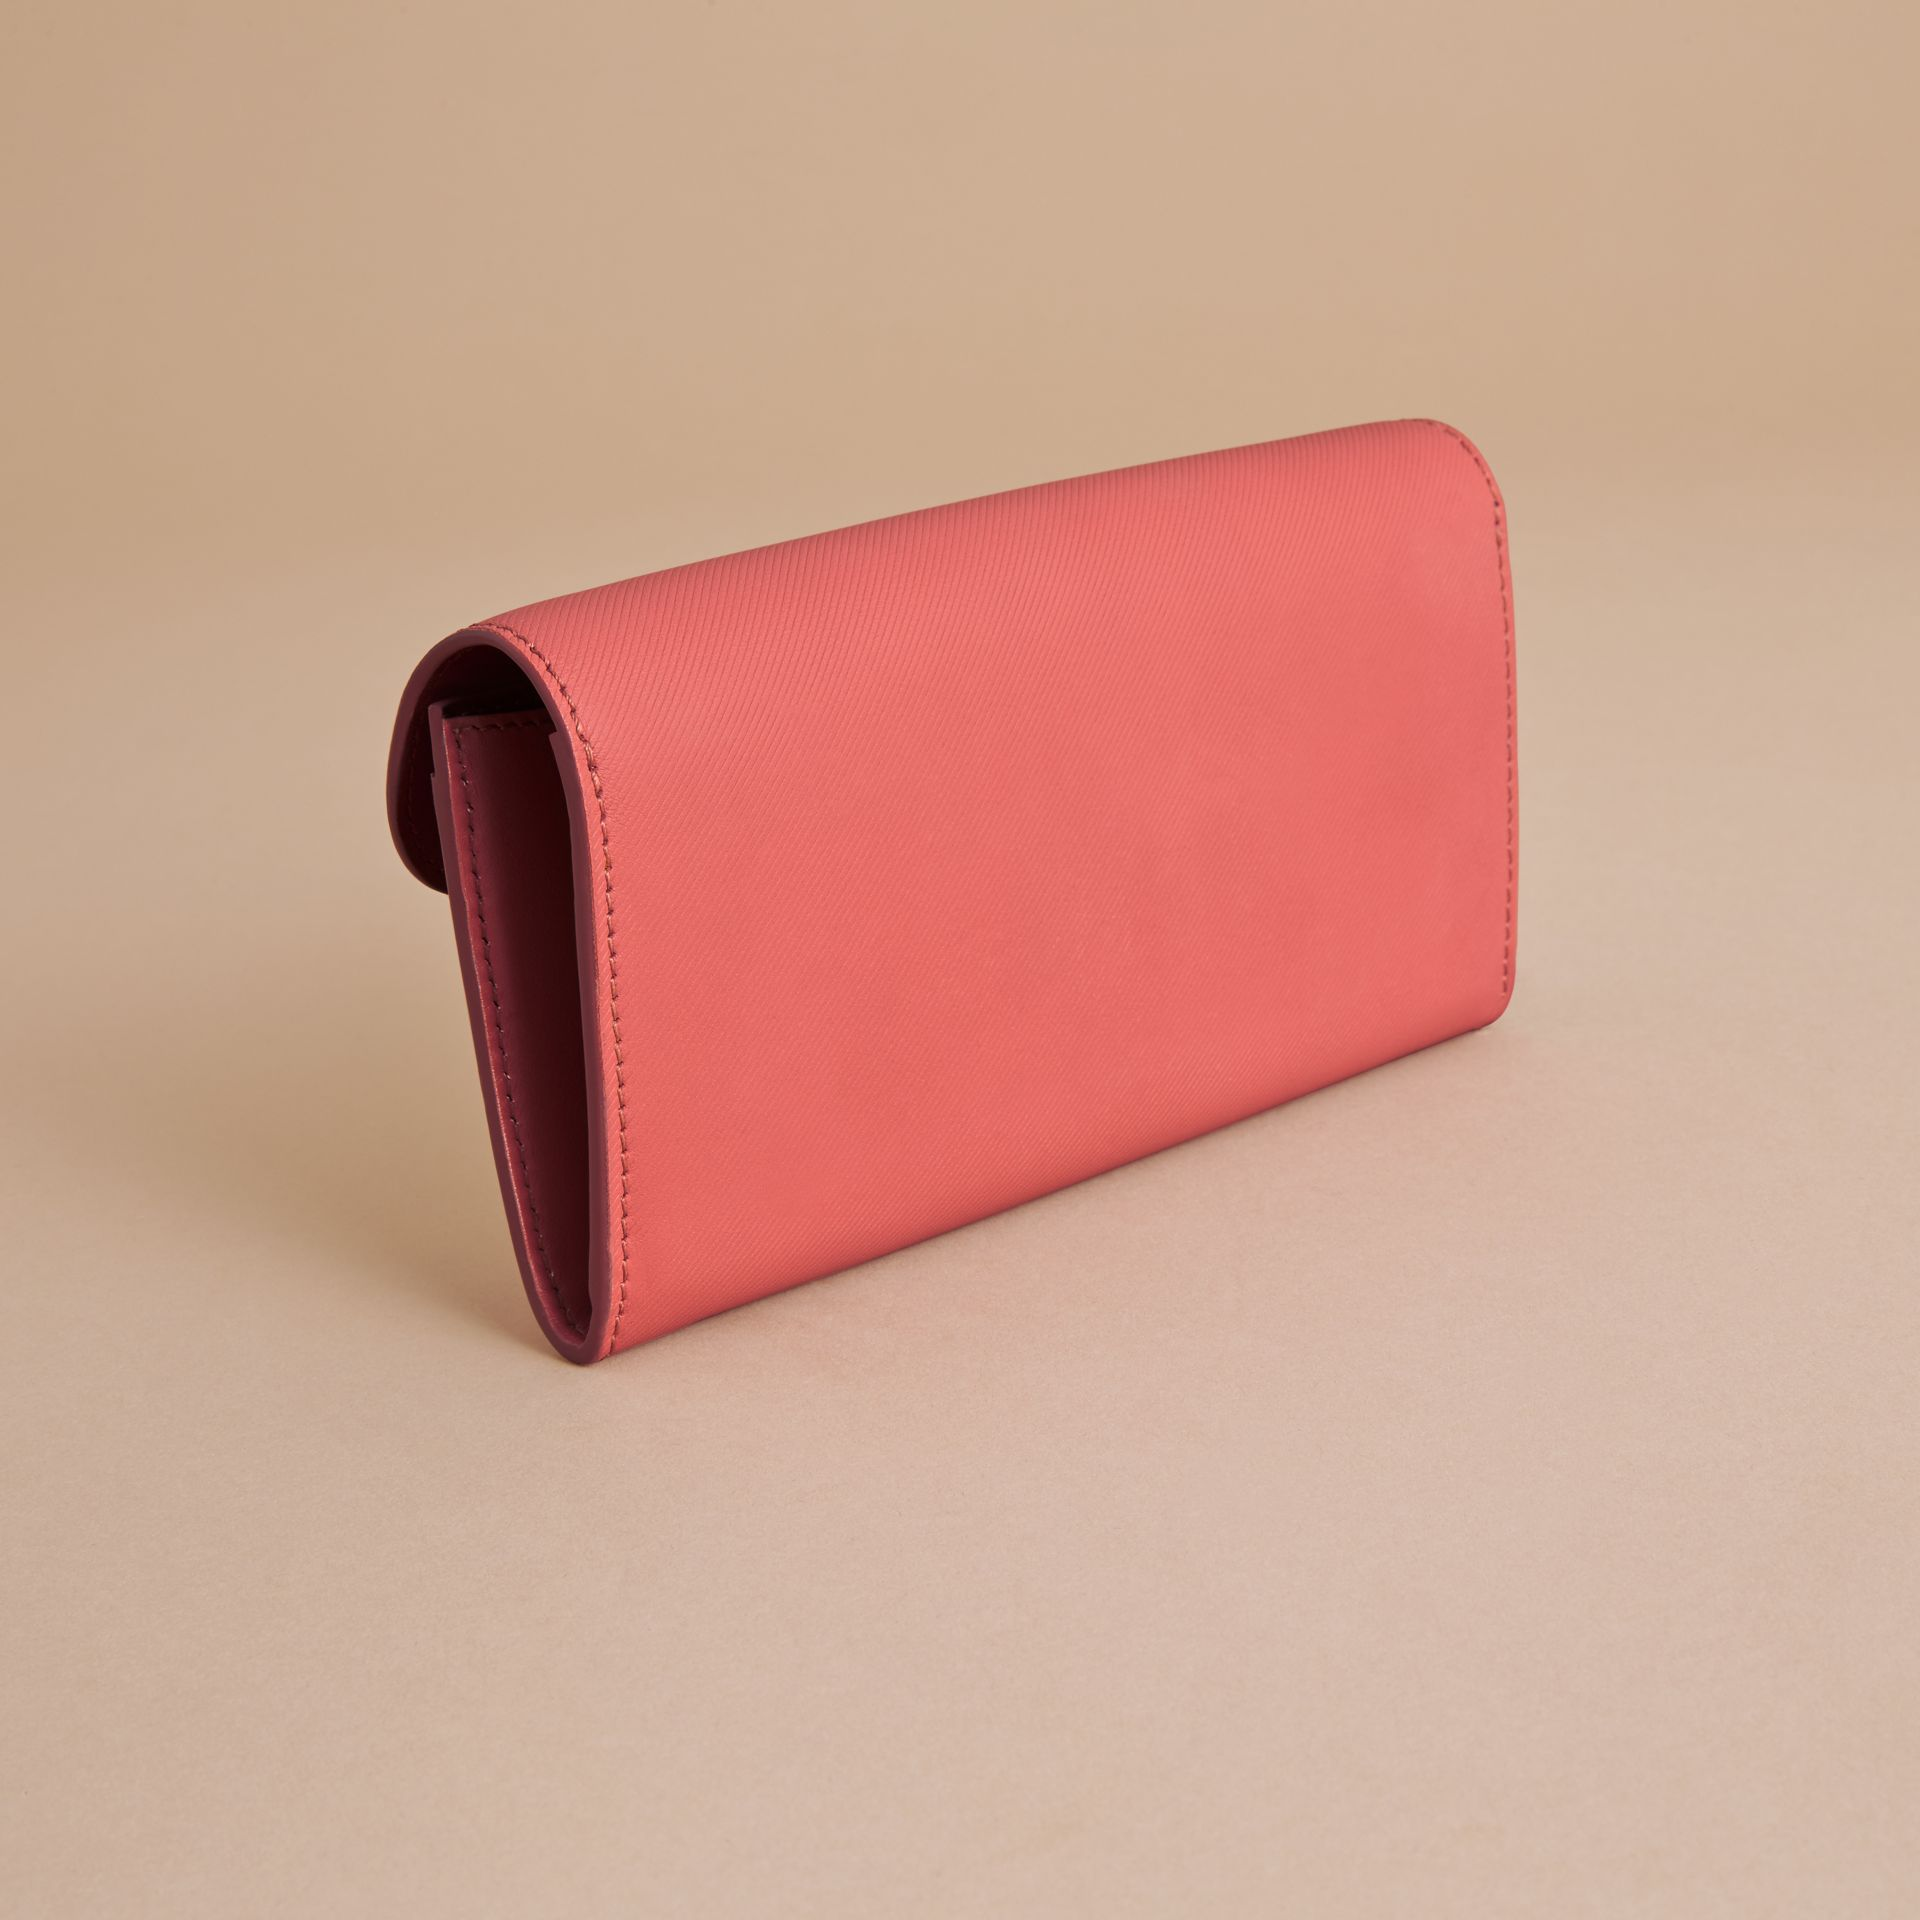 Two-tone Trench Leather Continental Wallet in Blossom Pink/antique Red - Women | Burberry United Kingdom - gallery image 3